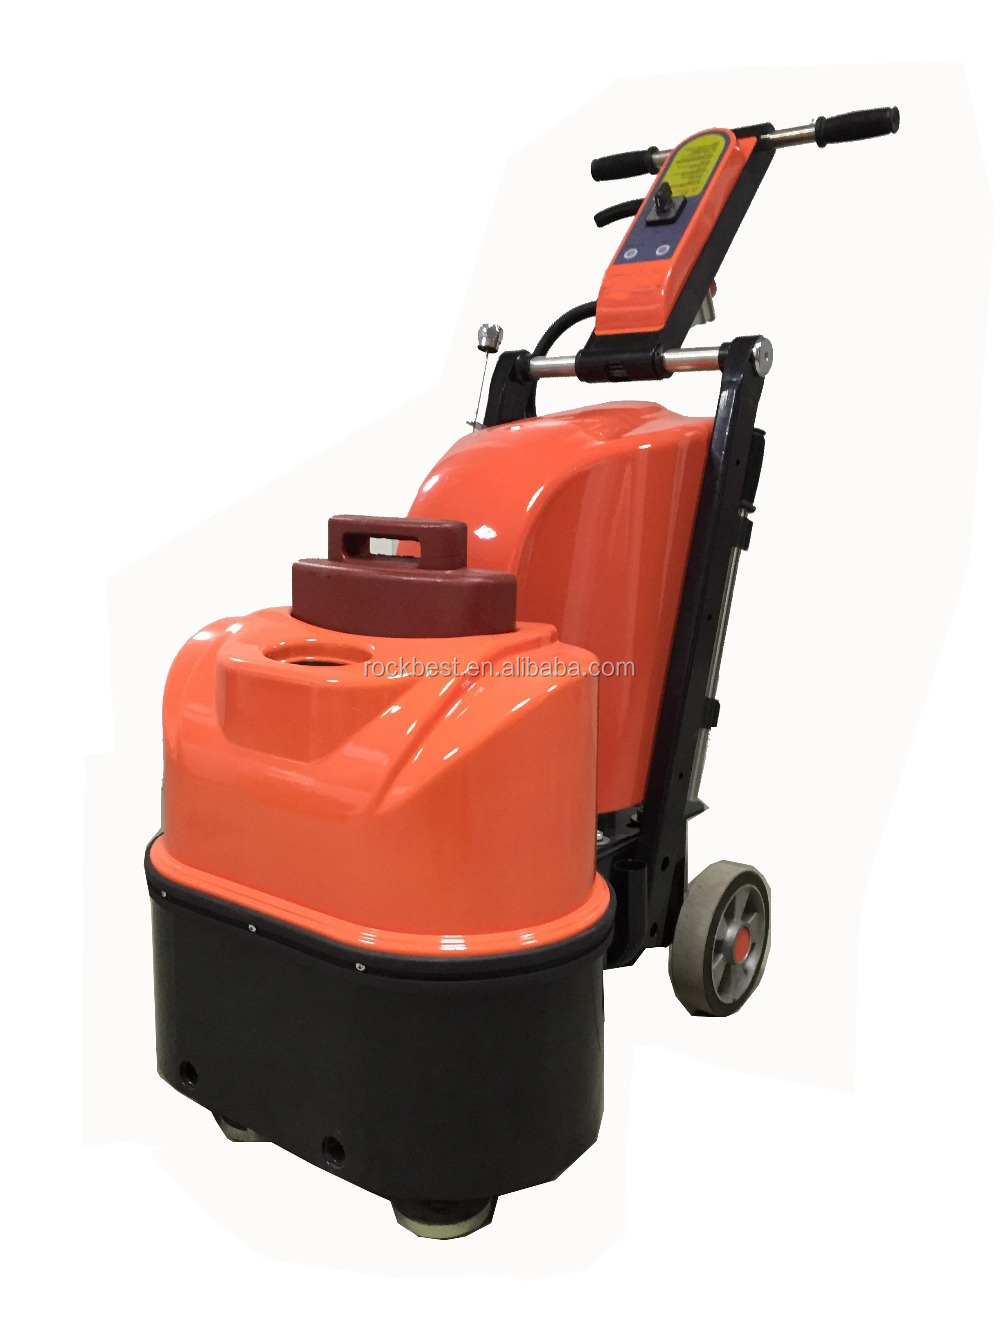 Industrial concrete epoxy floor grinding machine for Industrial concrete floor cleaning machines